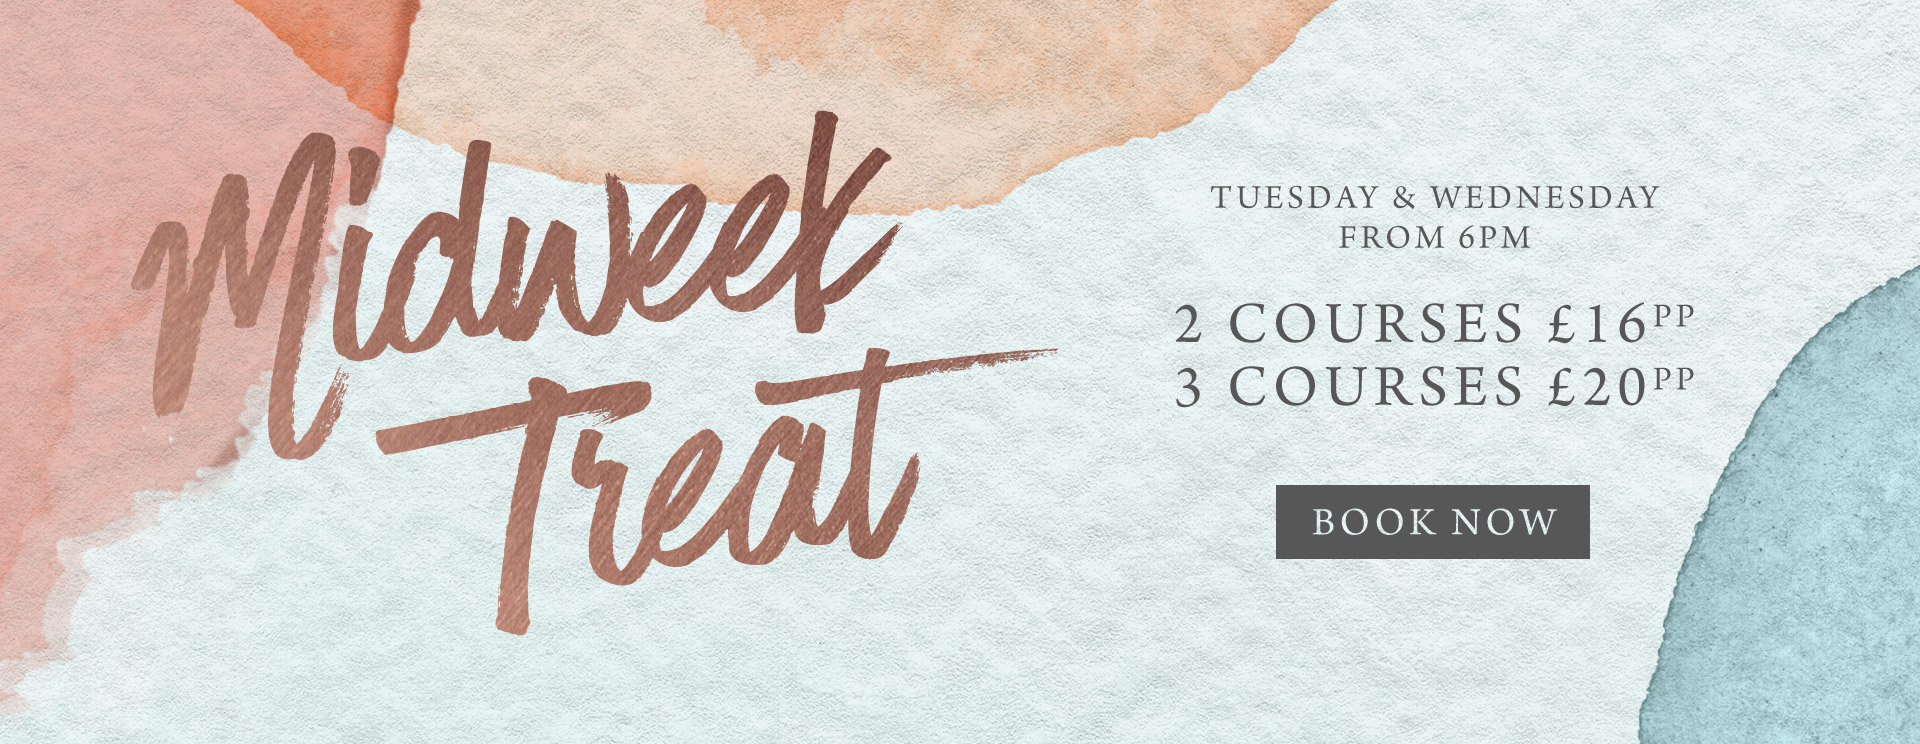 Midweek treat at The Barnt Green Inn - Book now